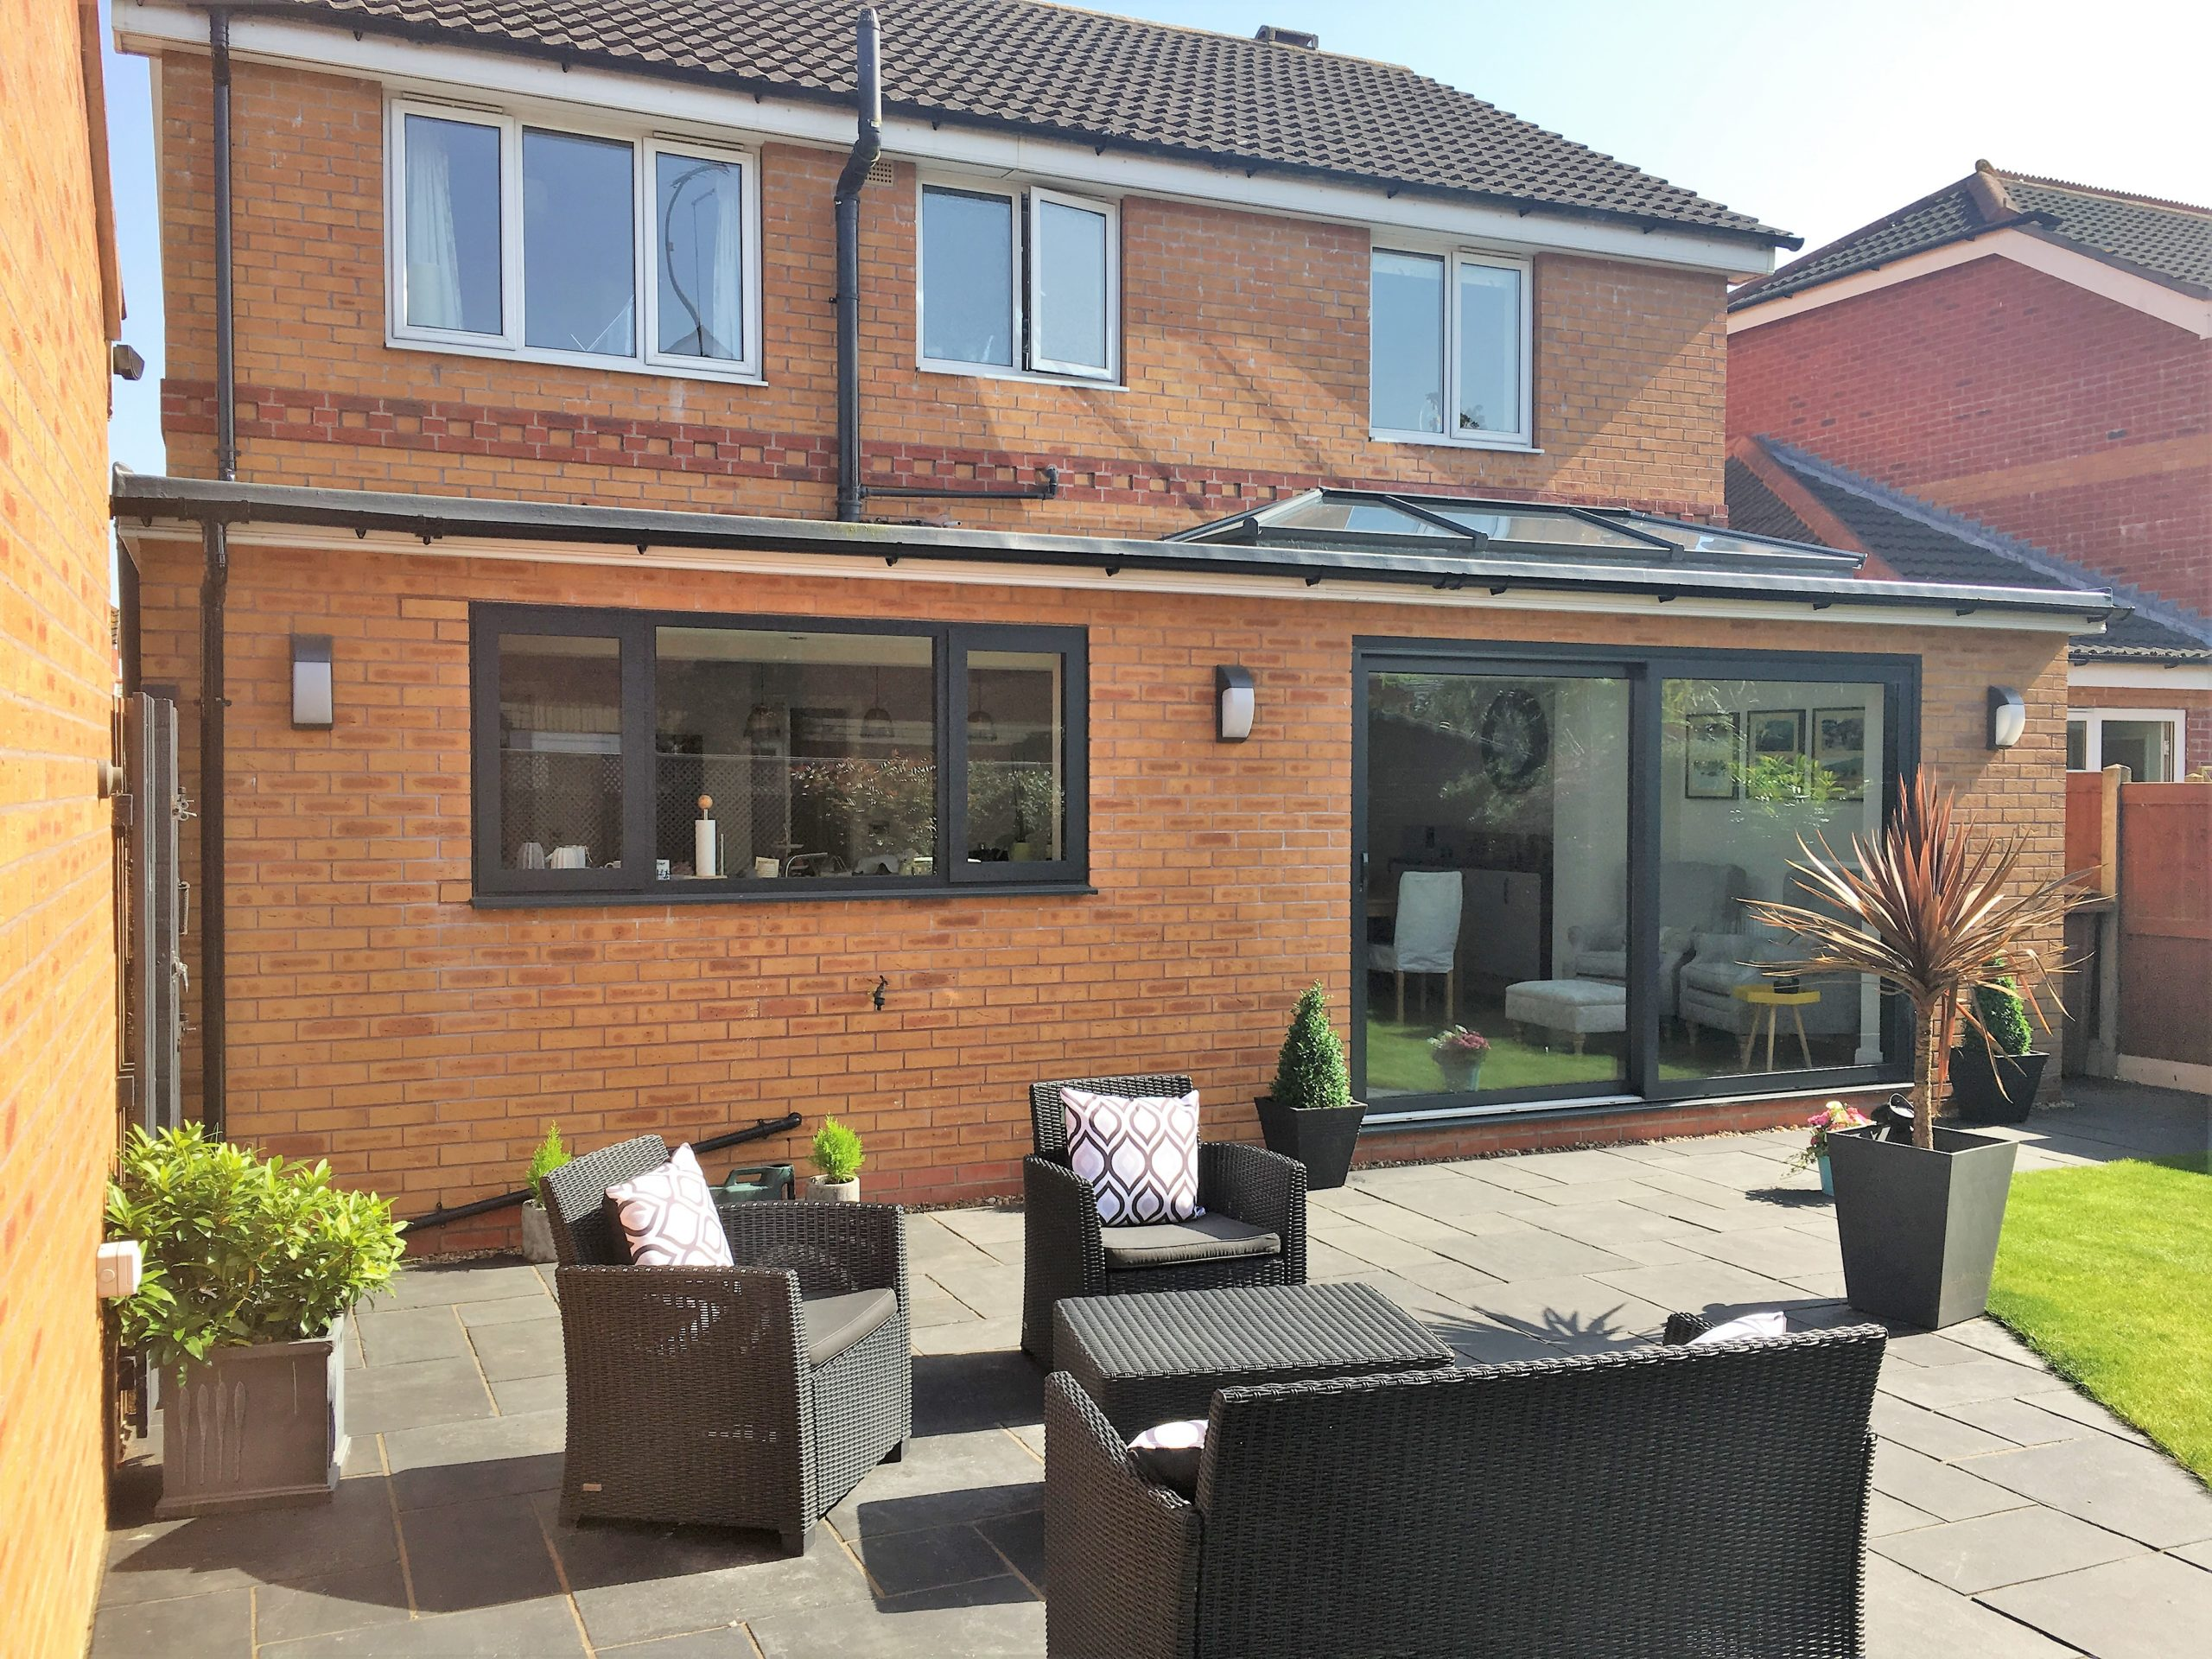 View of single storey extension and lawn furniture